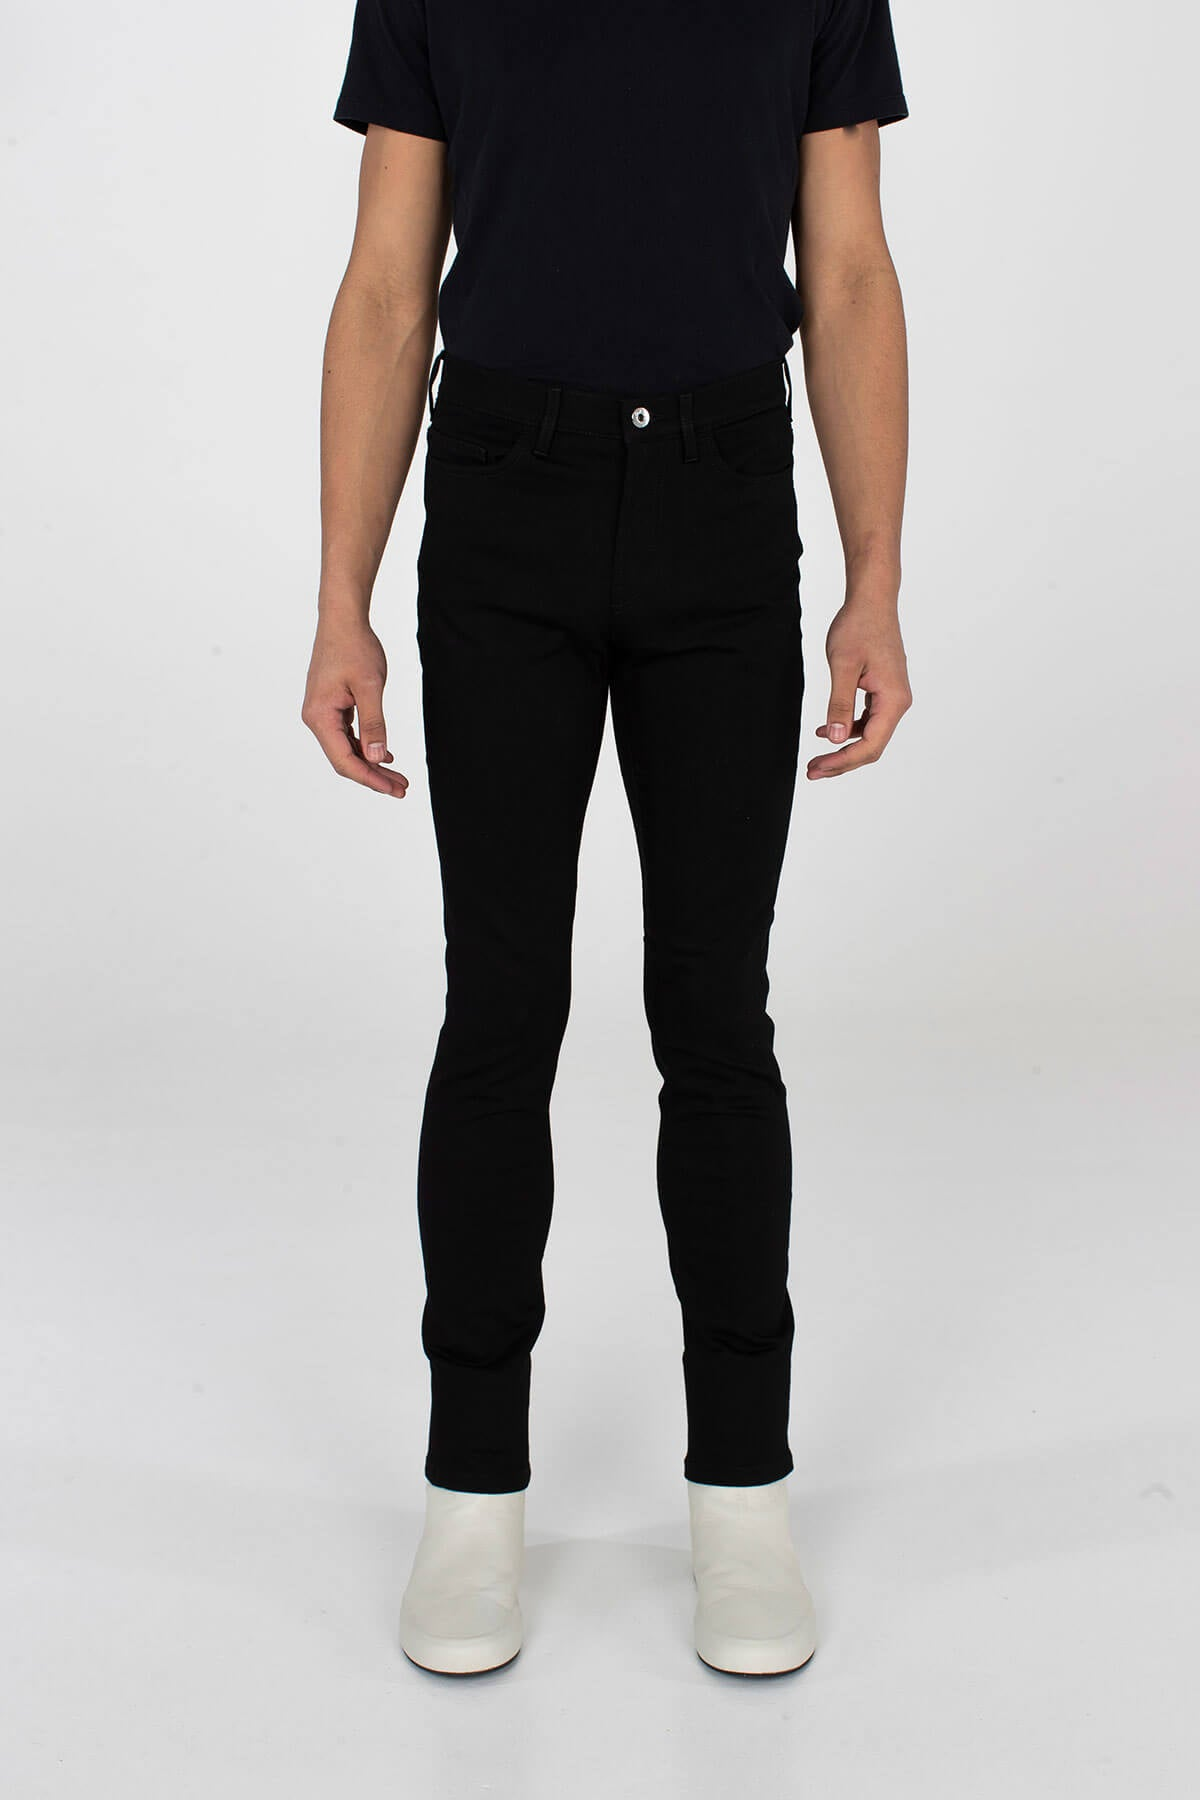 Crixus Jeans Black - BOTTOM - MJB